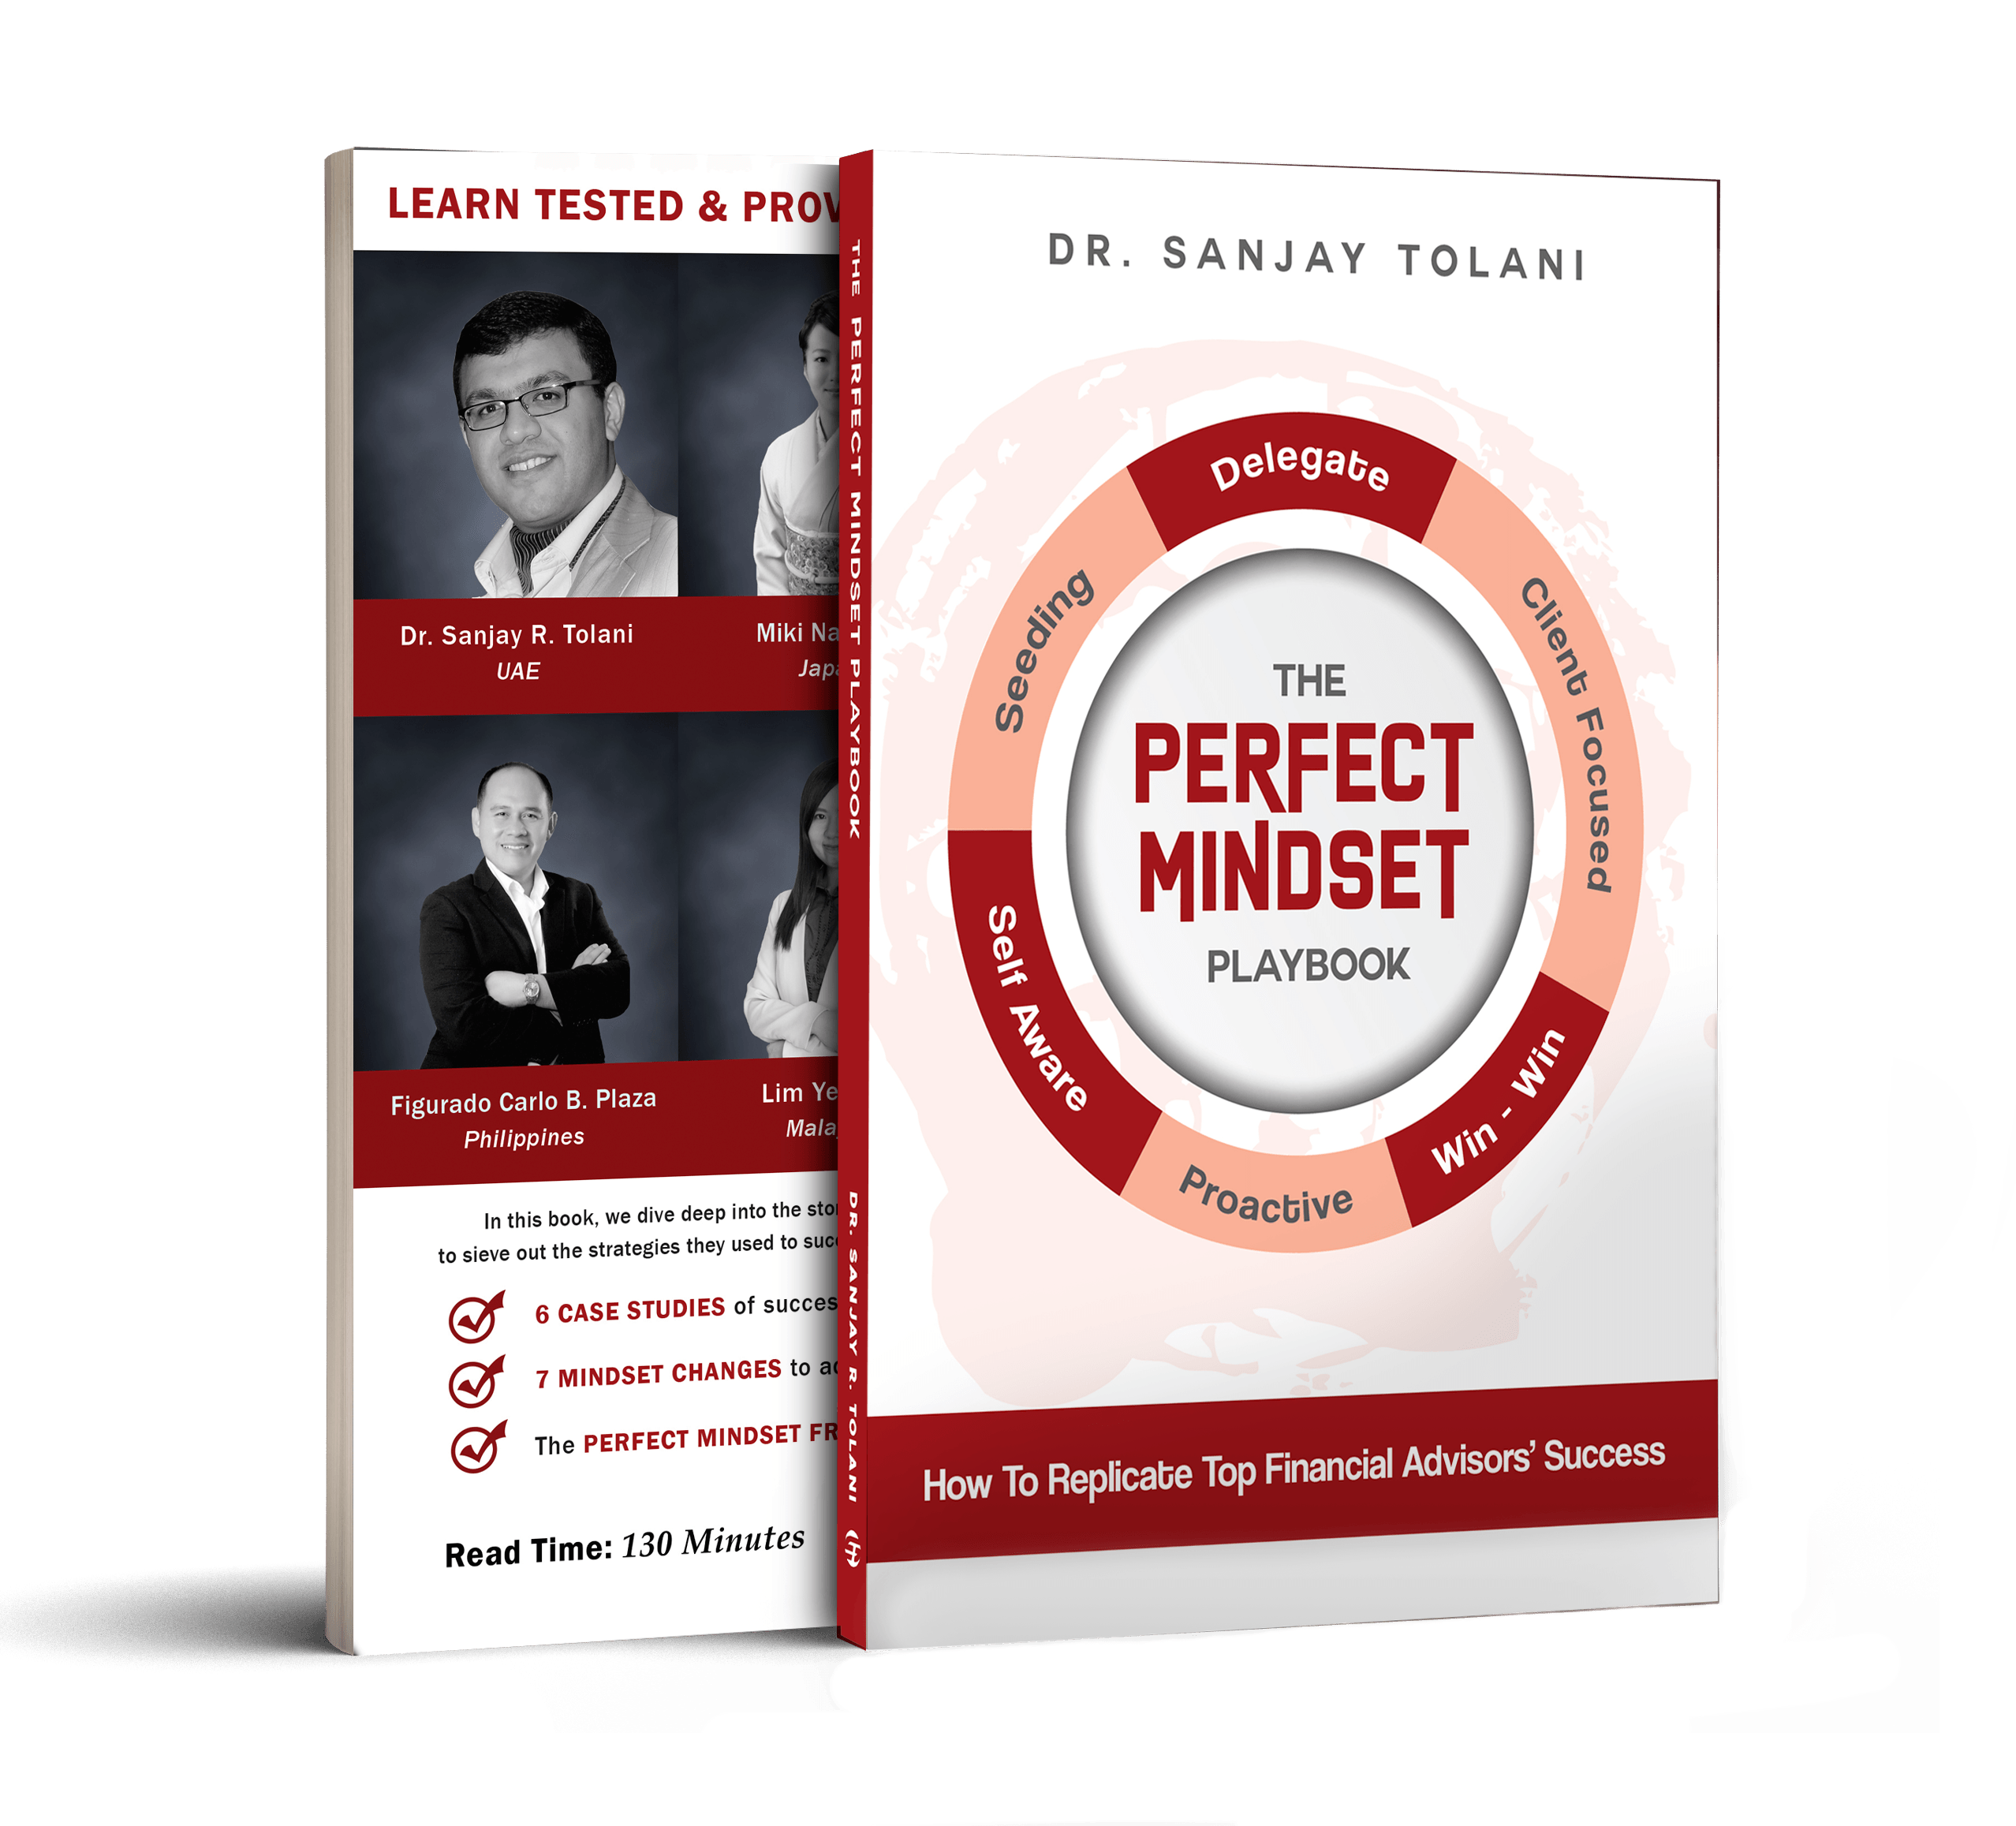 The RED Perfect Mindset Playbook